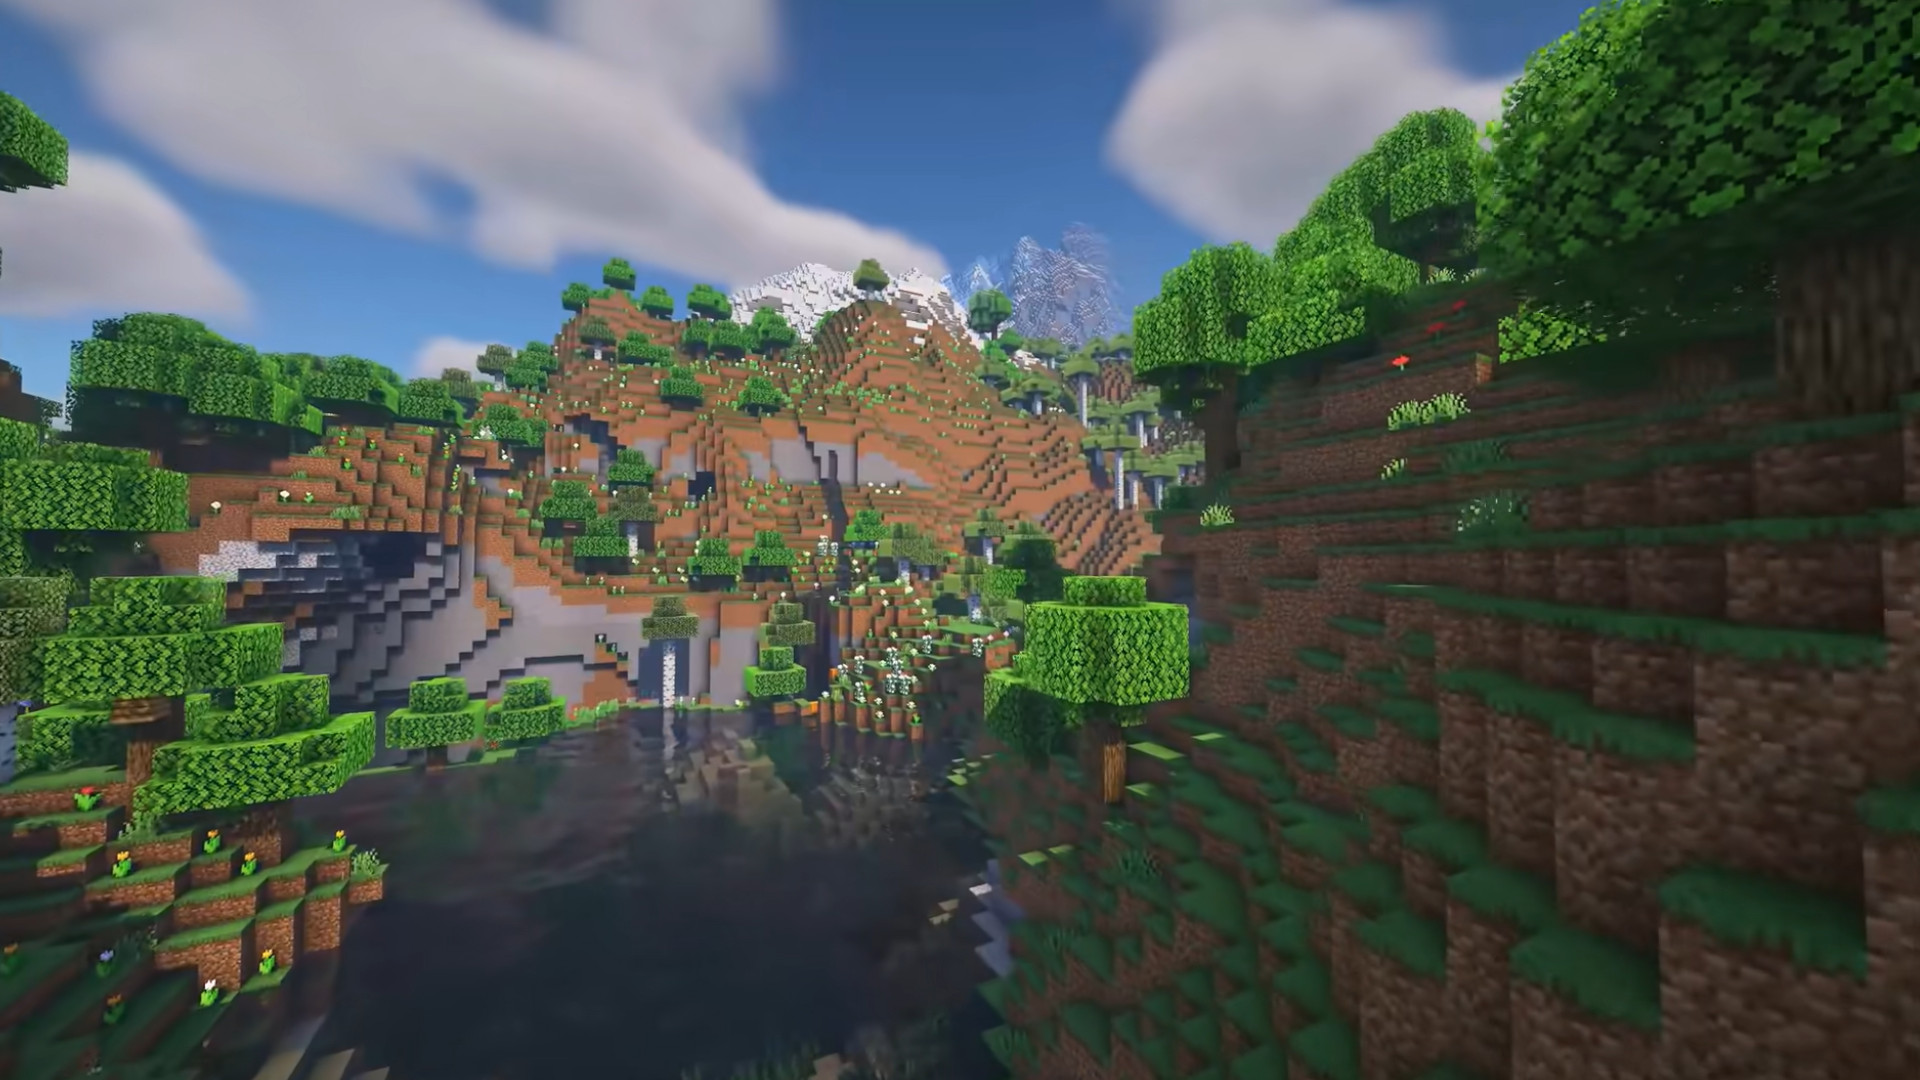 Minecraft's new natural environments are getting even better